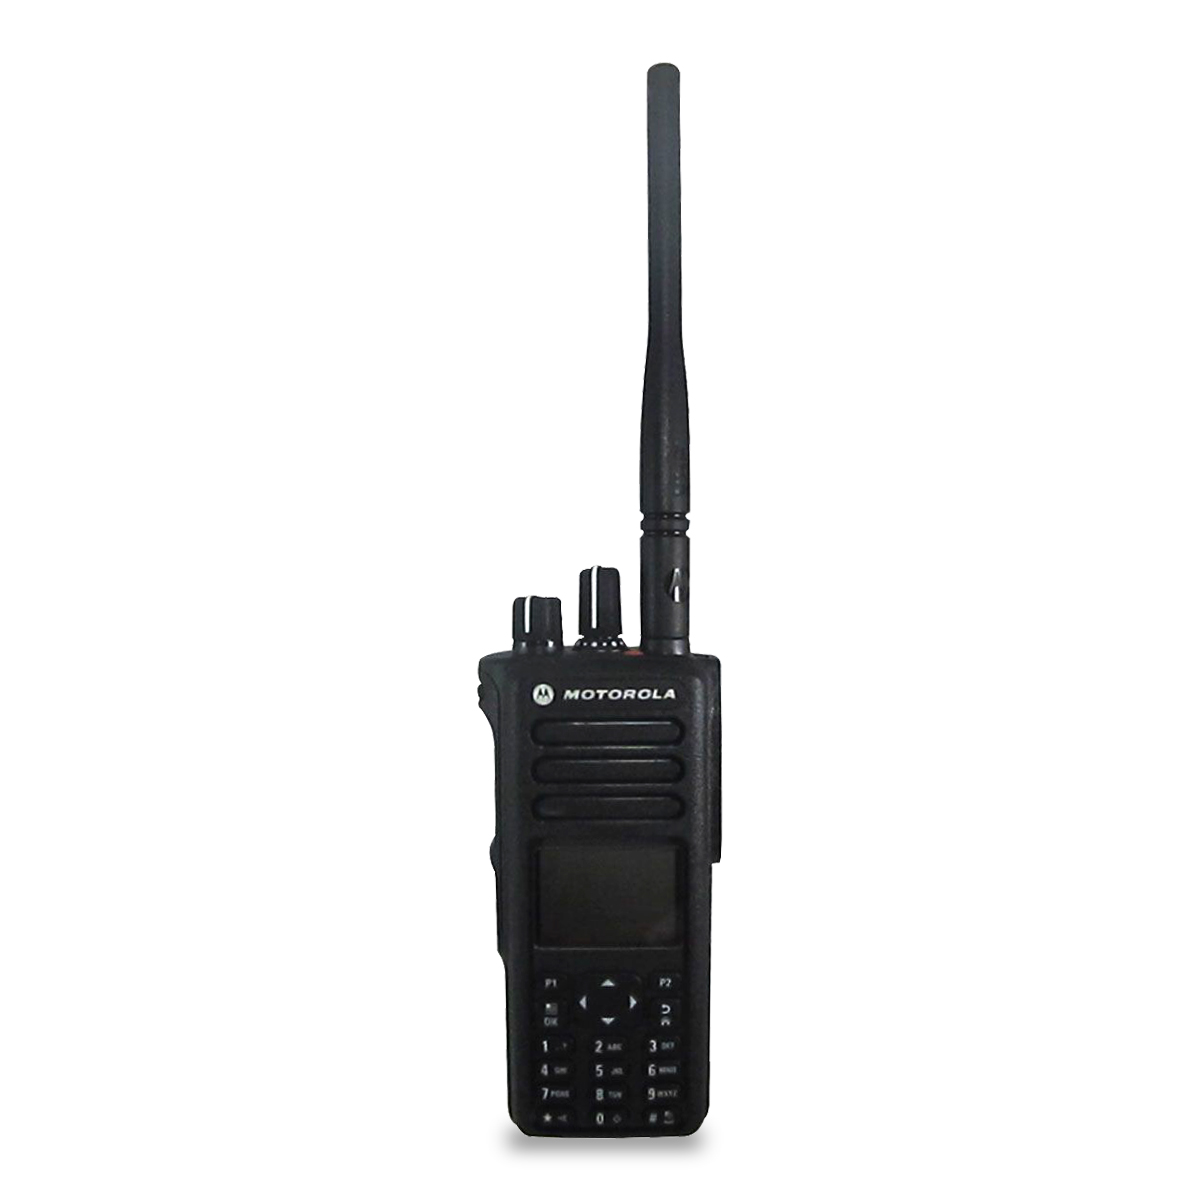 Radio Motorola DGP8550e Digital